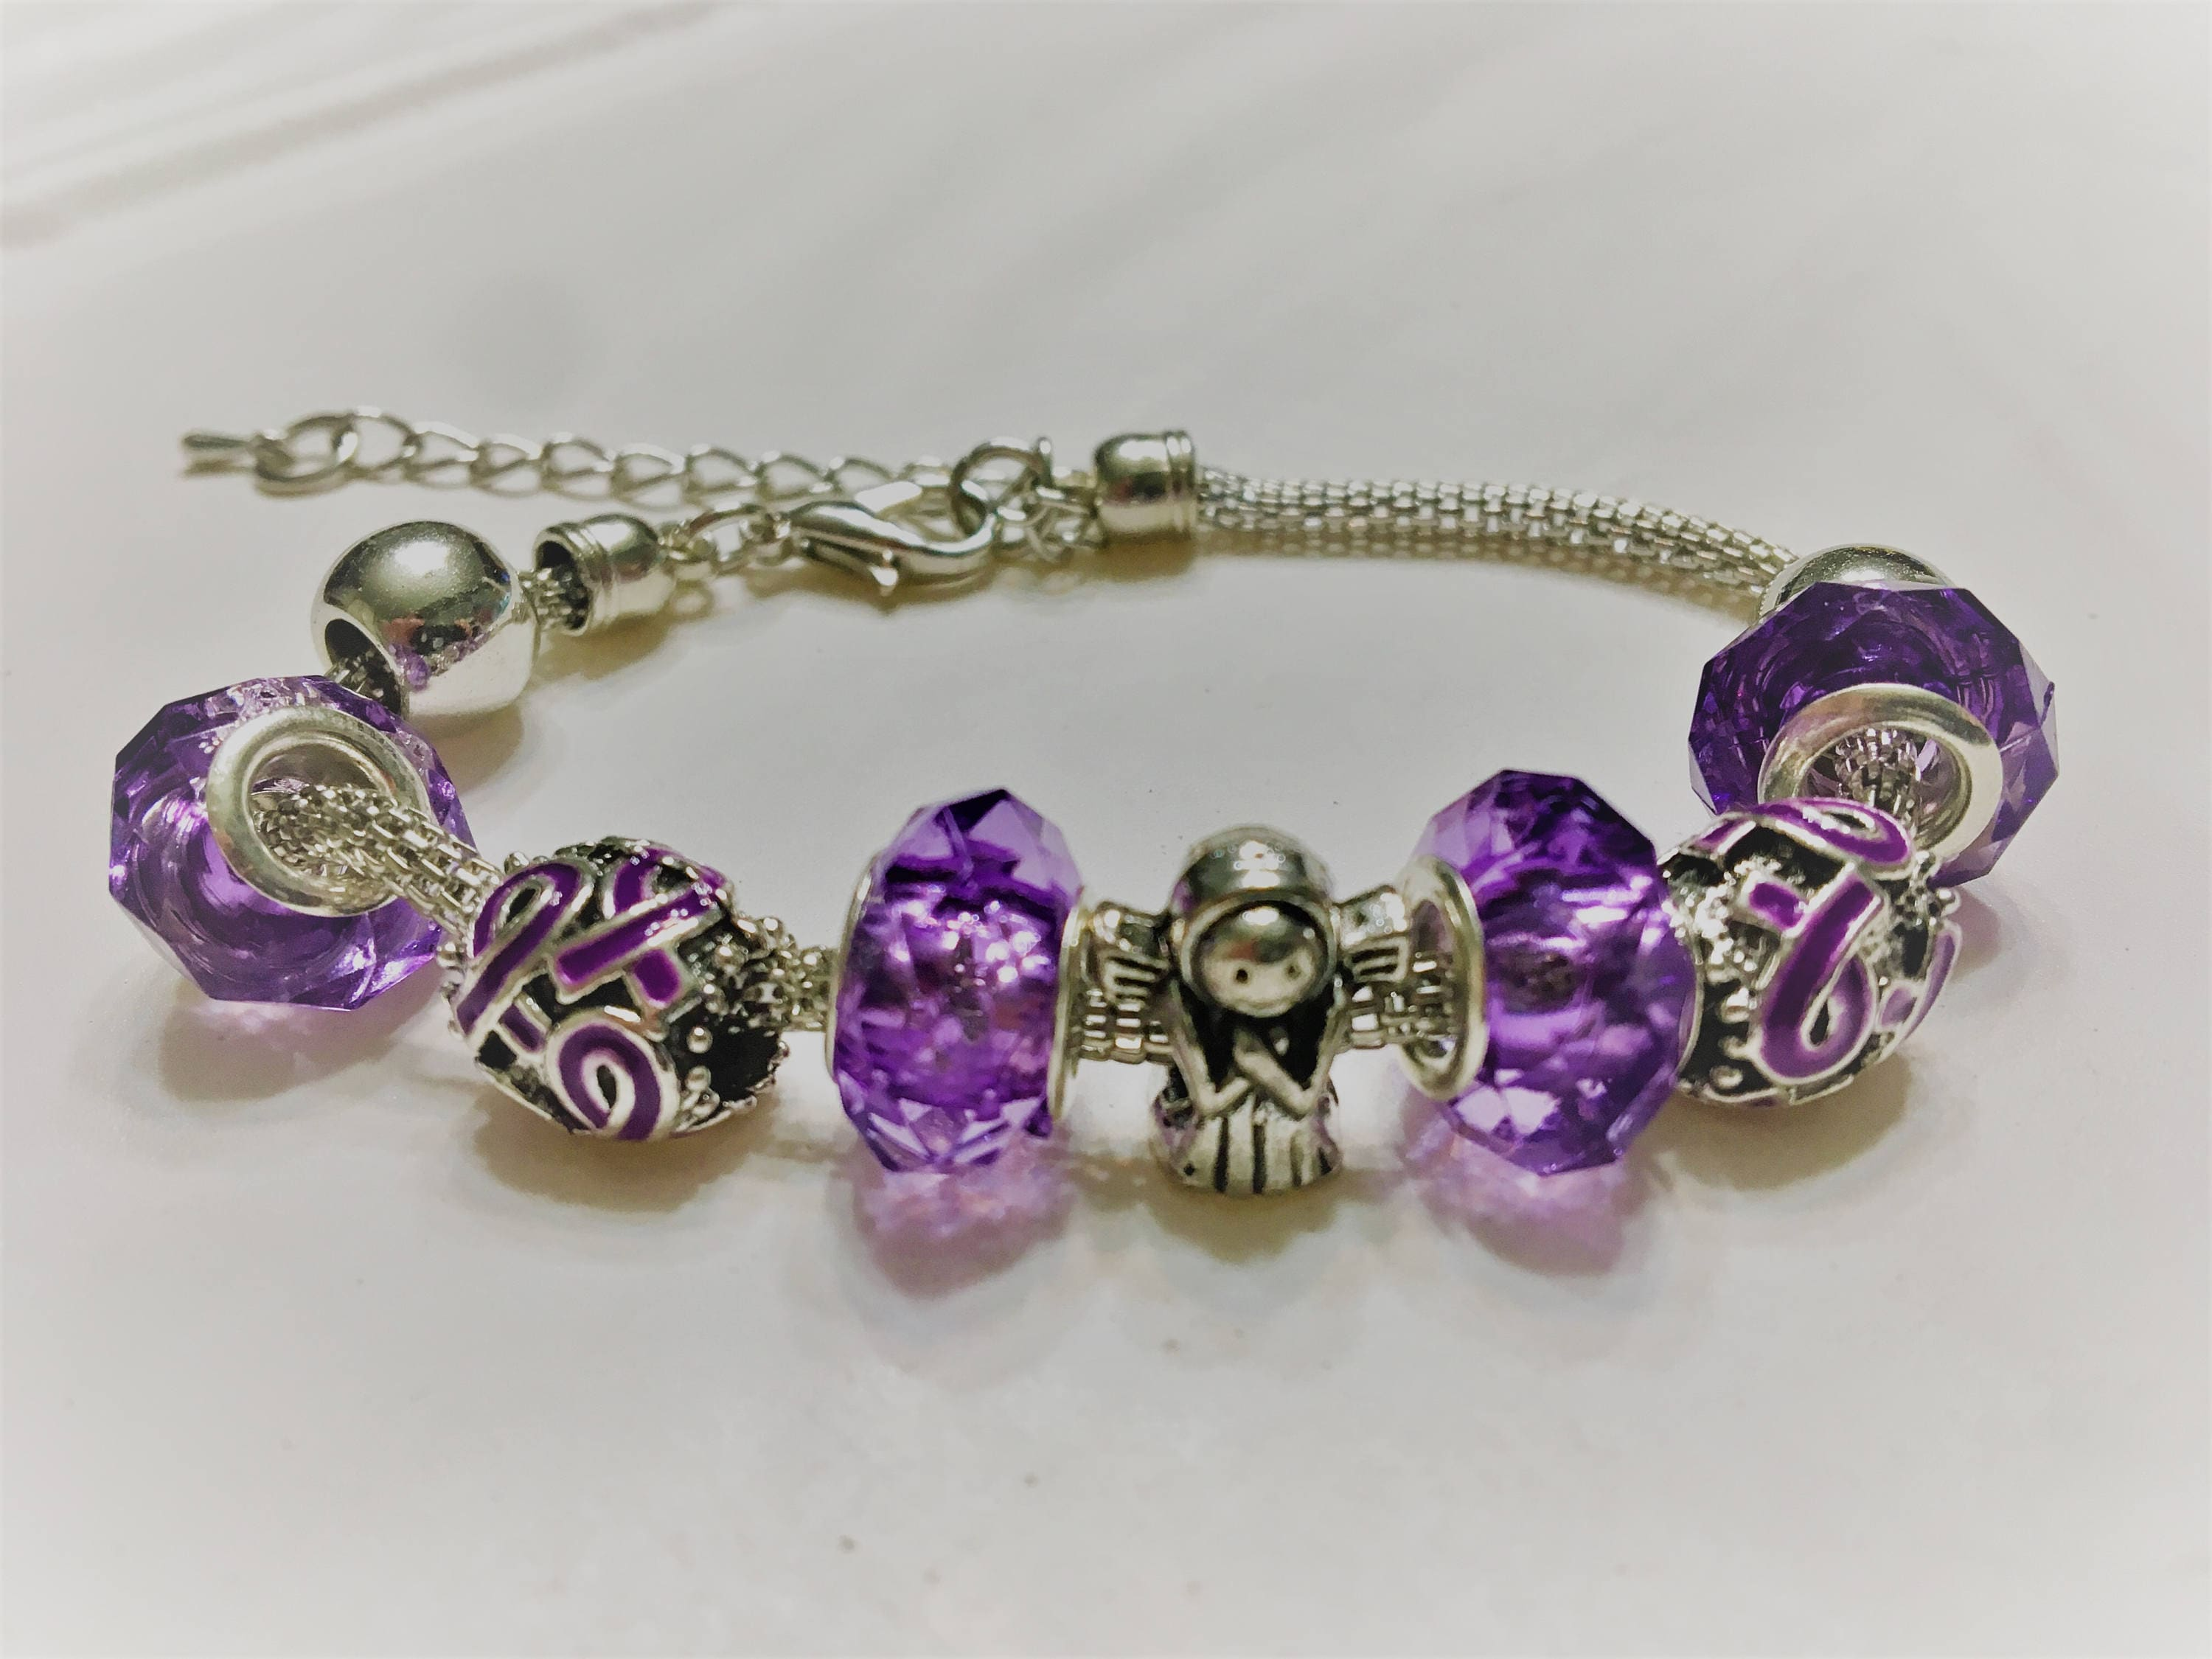 bracelet alzheimer awarenesspurple pin awareness epilepsy migraine ejaidesigns s disease lupus by crohn ribboncrohn